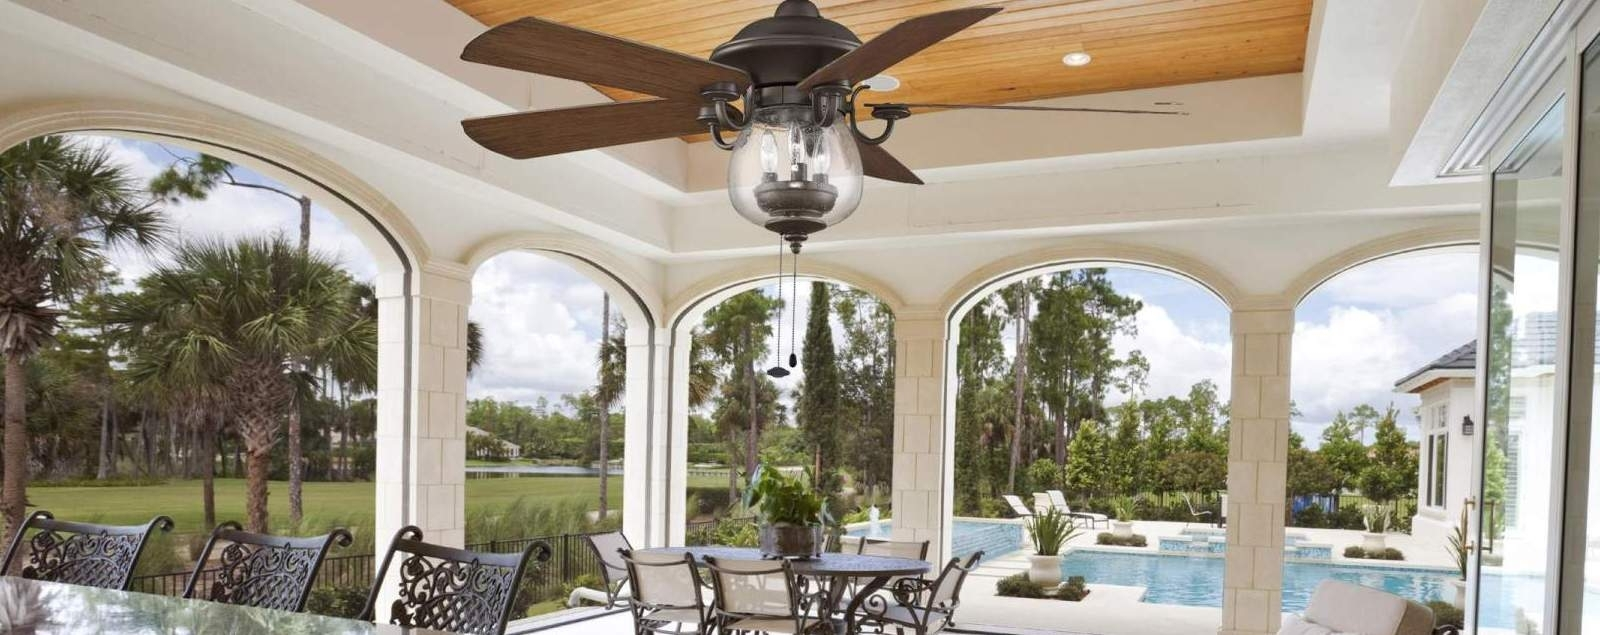 Featured Photo of Outdoor Ceiling Fans For High Wind Areas